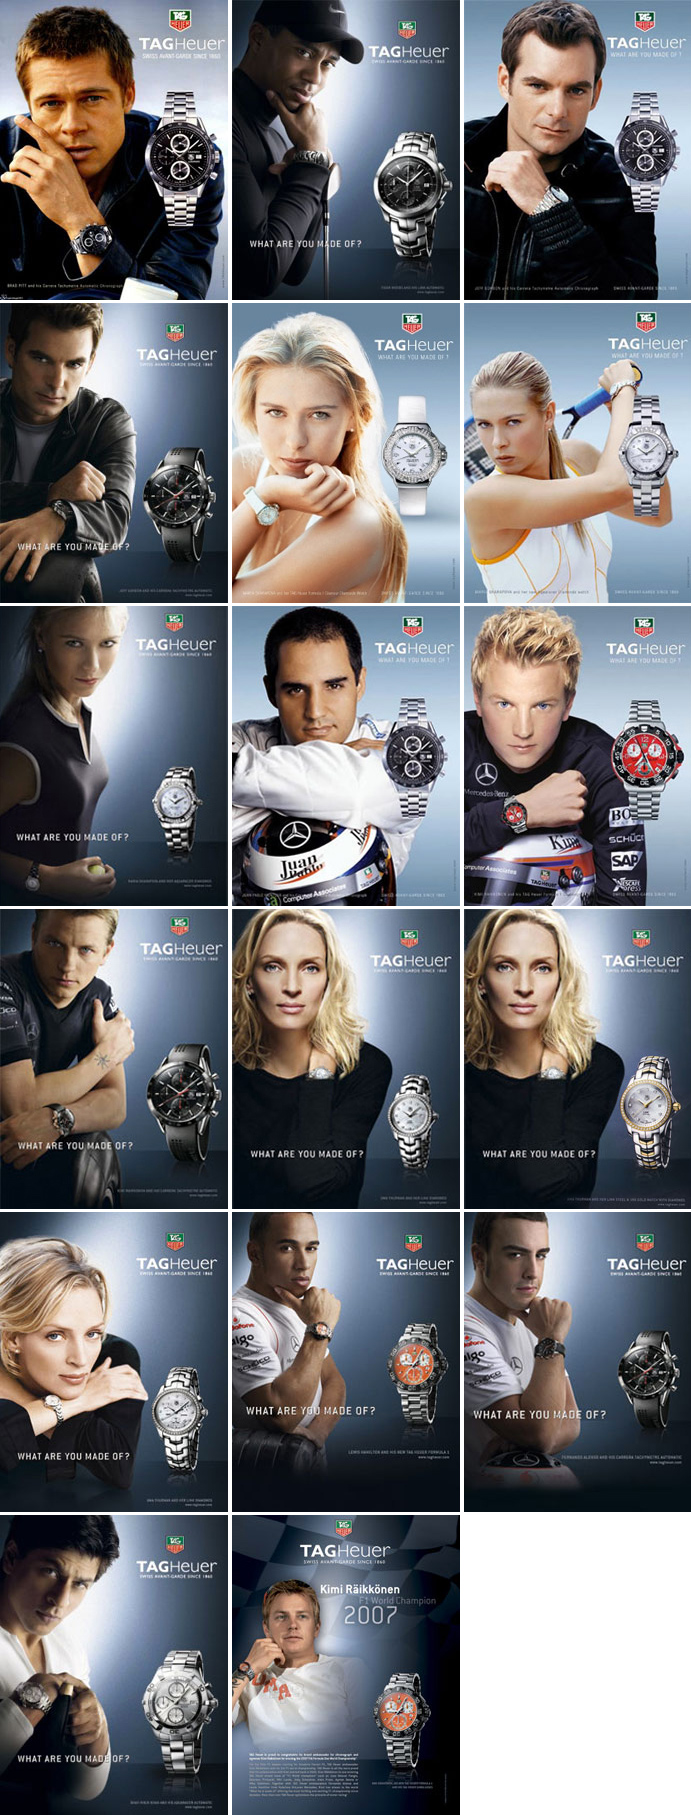 Tag Heuer Advertisements